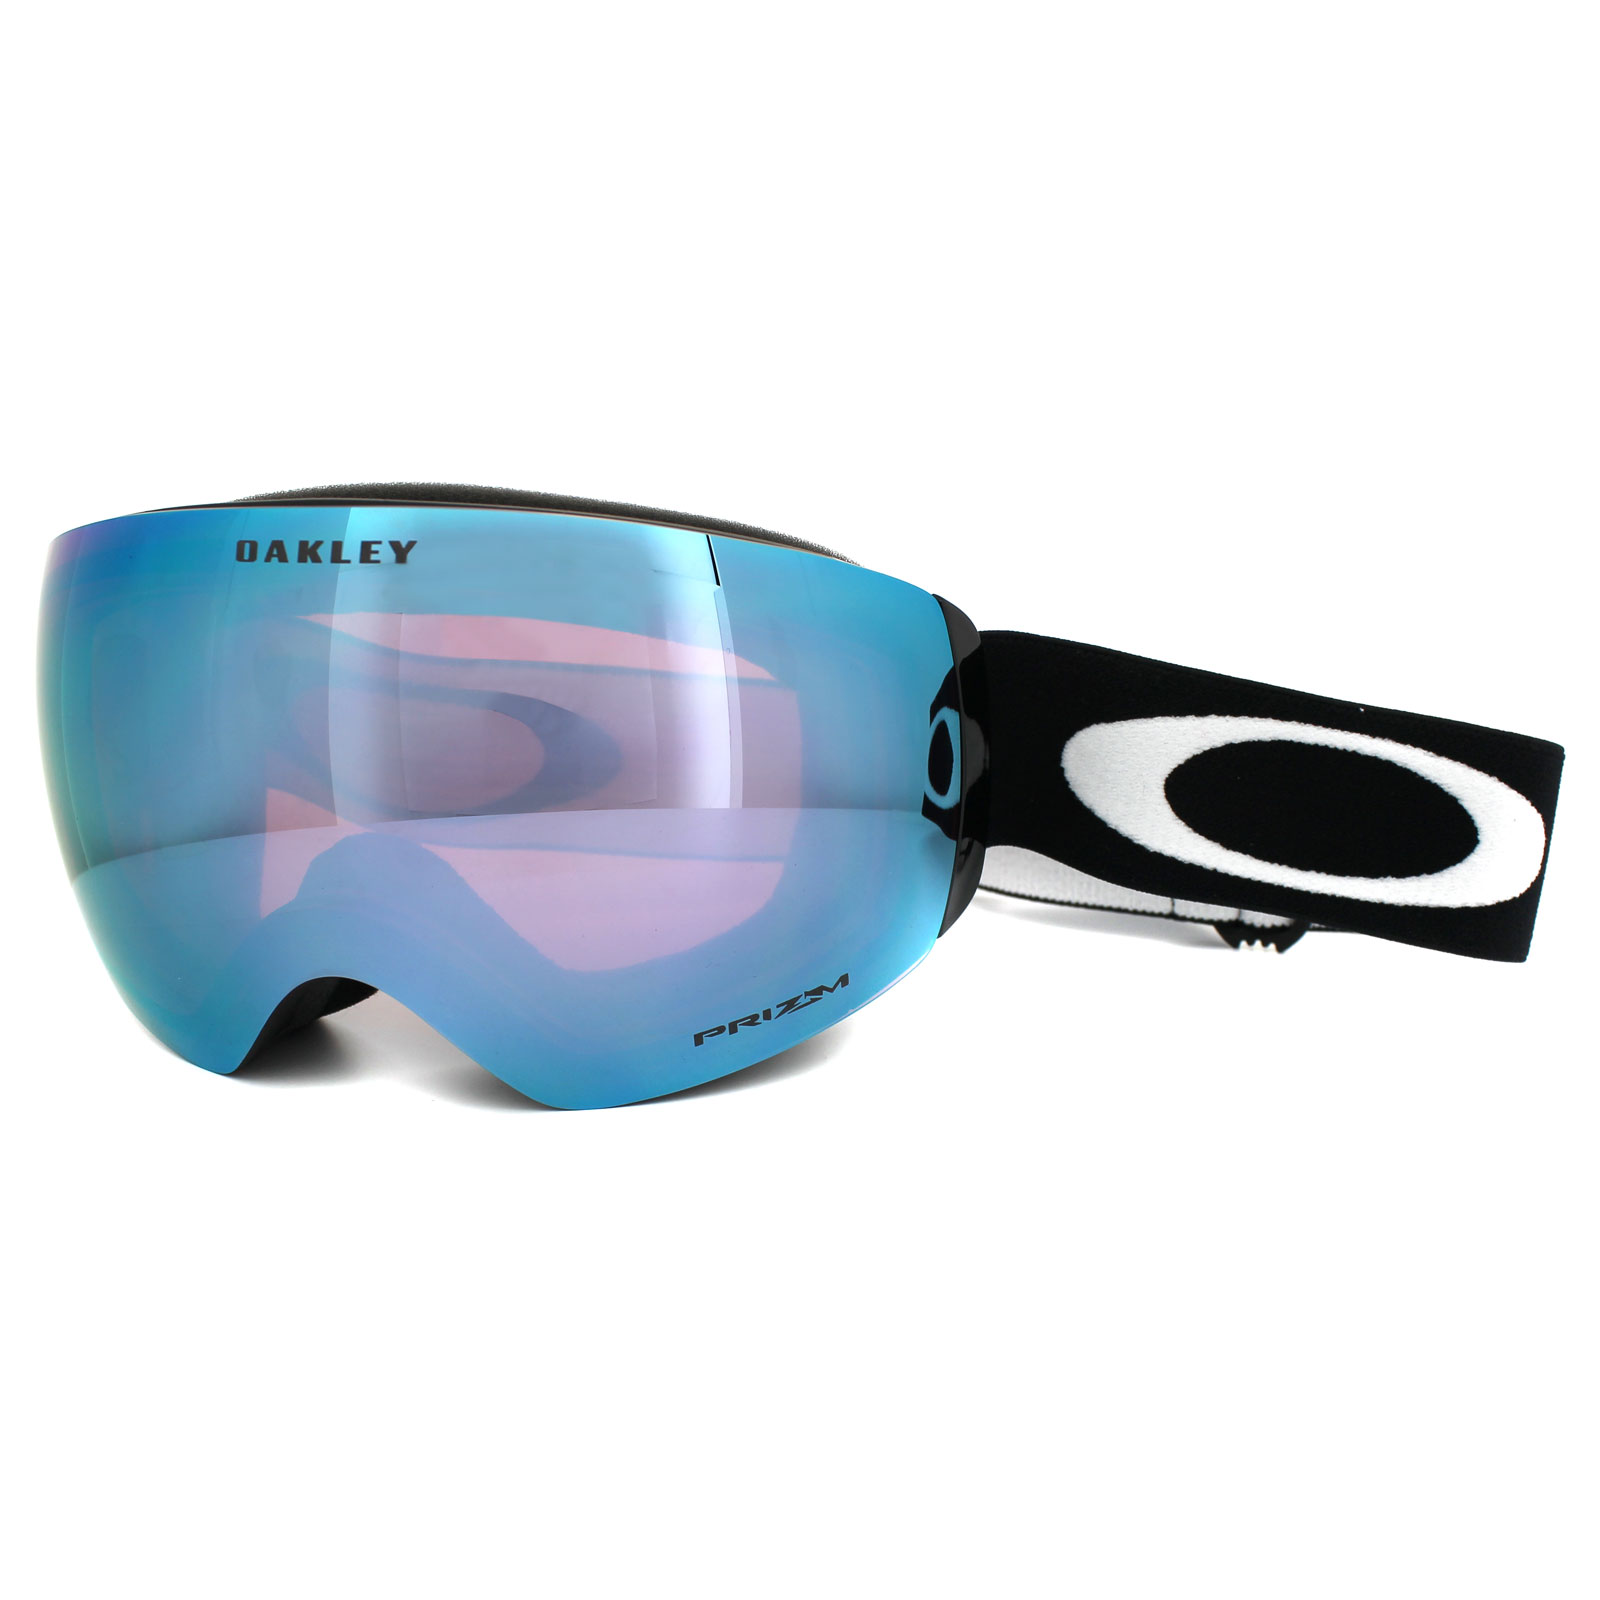 oakley ski goggles flight deck 5xwm  oakley ski goggles flight deck